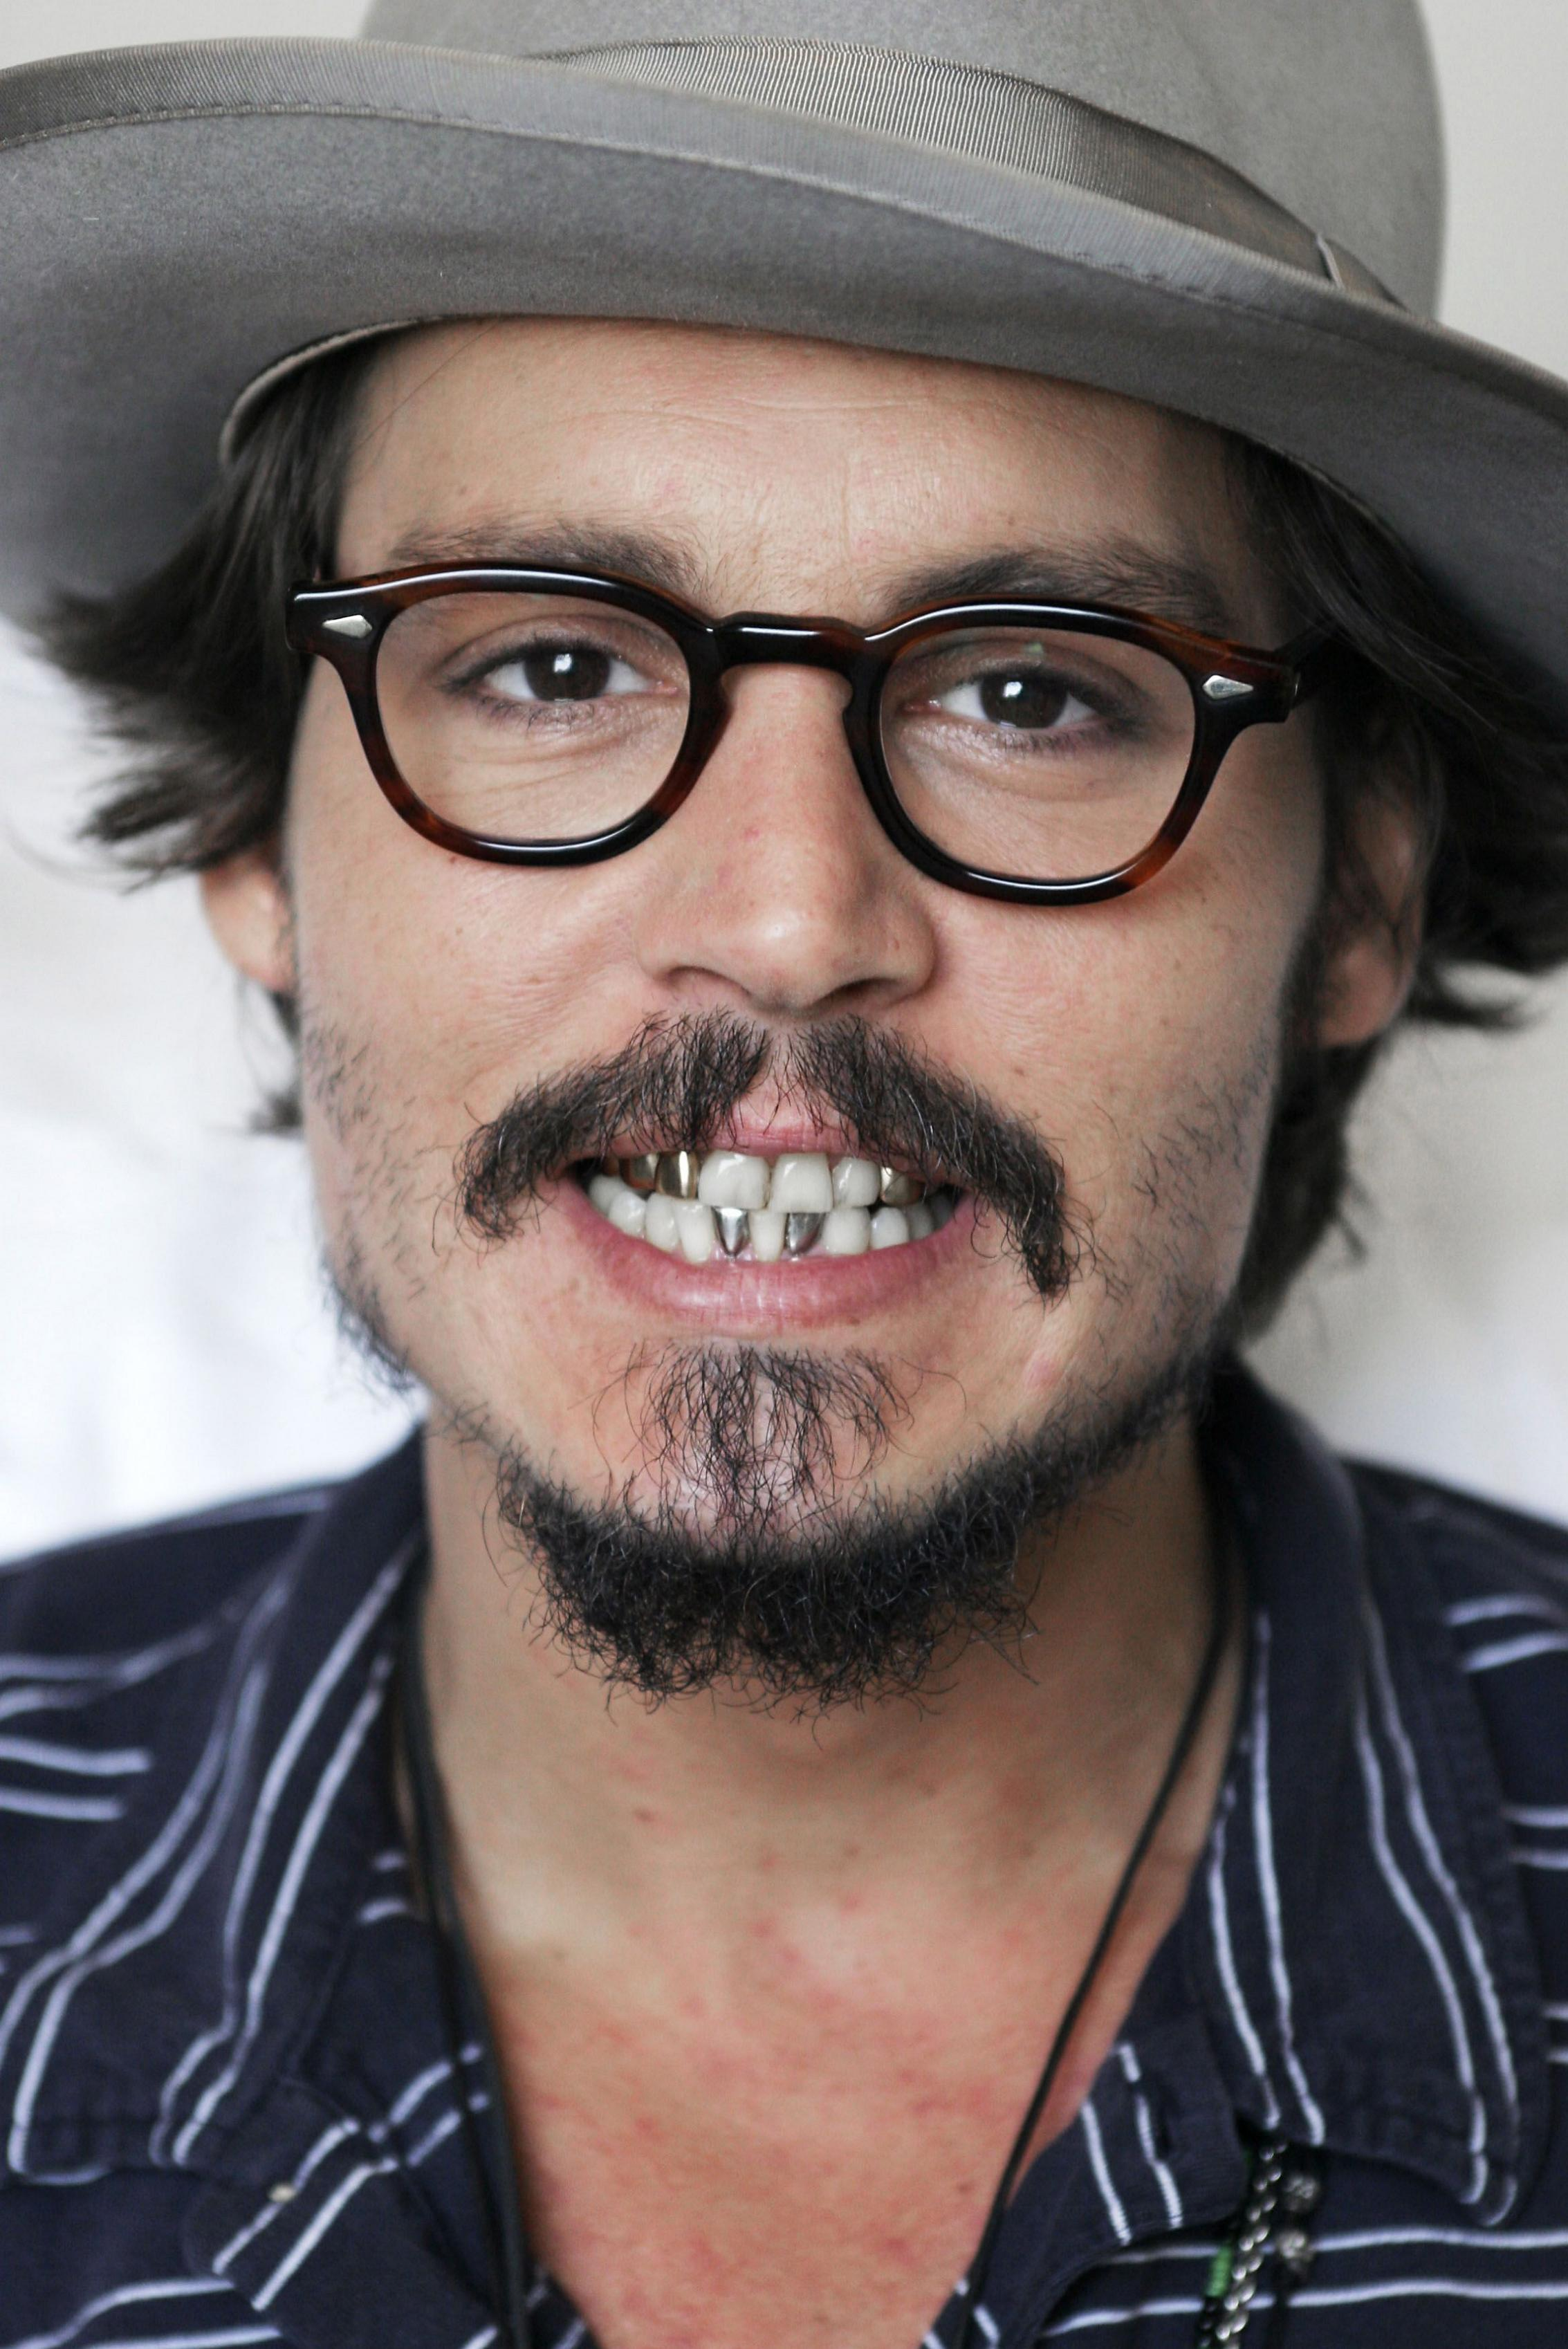 Johnny Depp - Johnny Depp Photo (32658662) - Fanpop